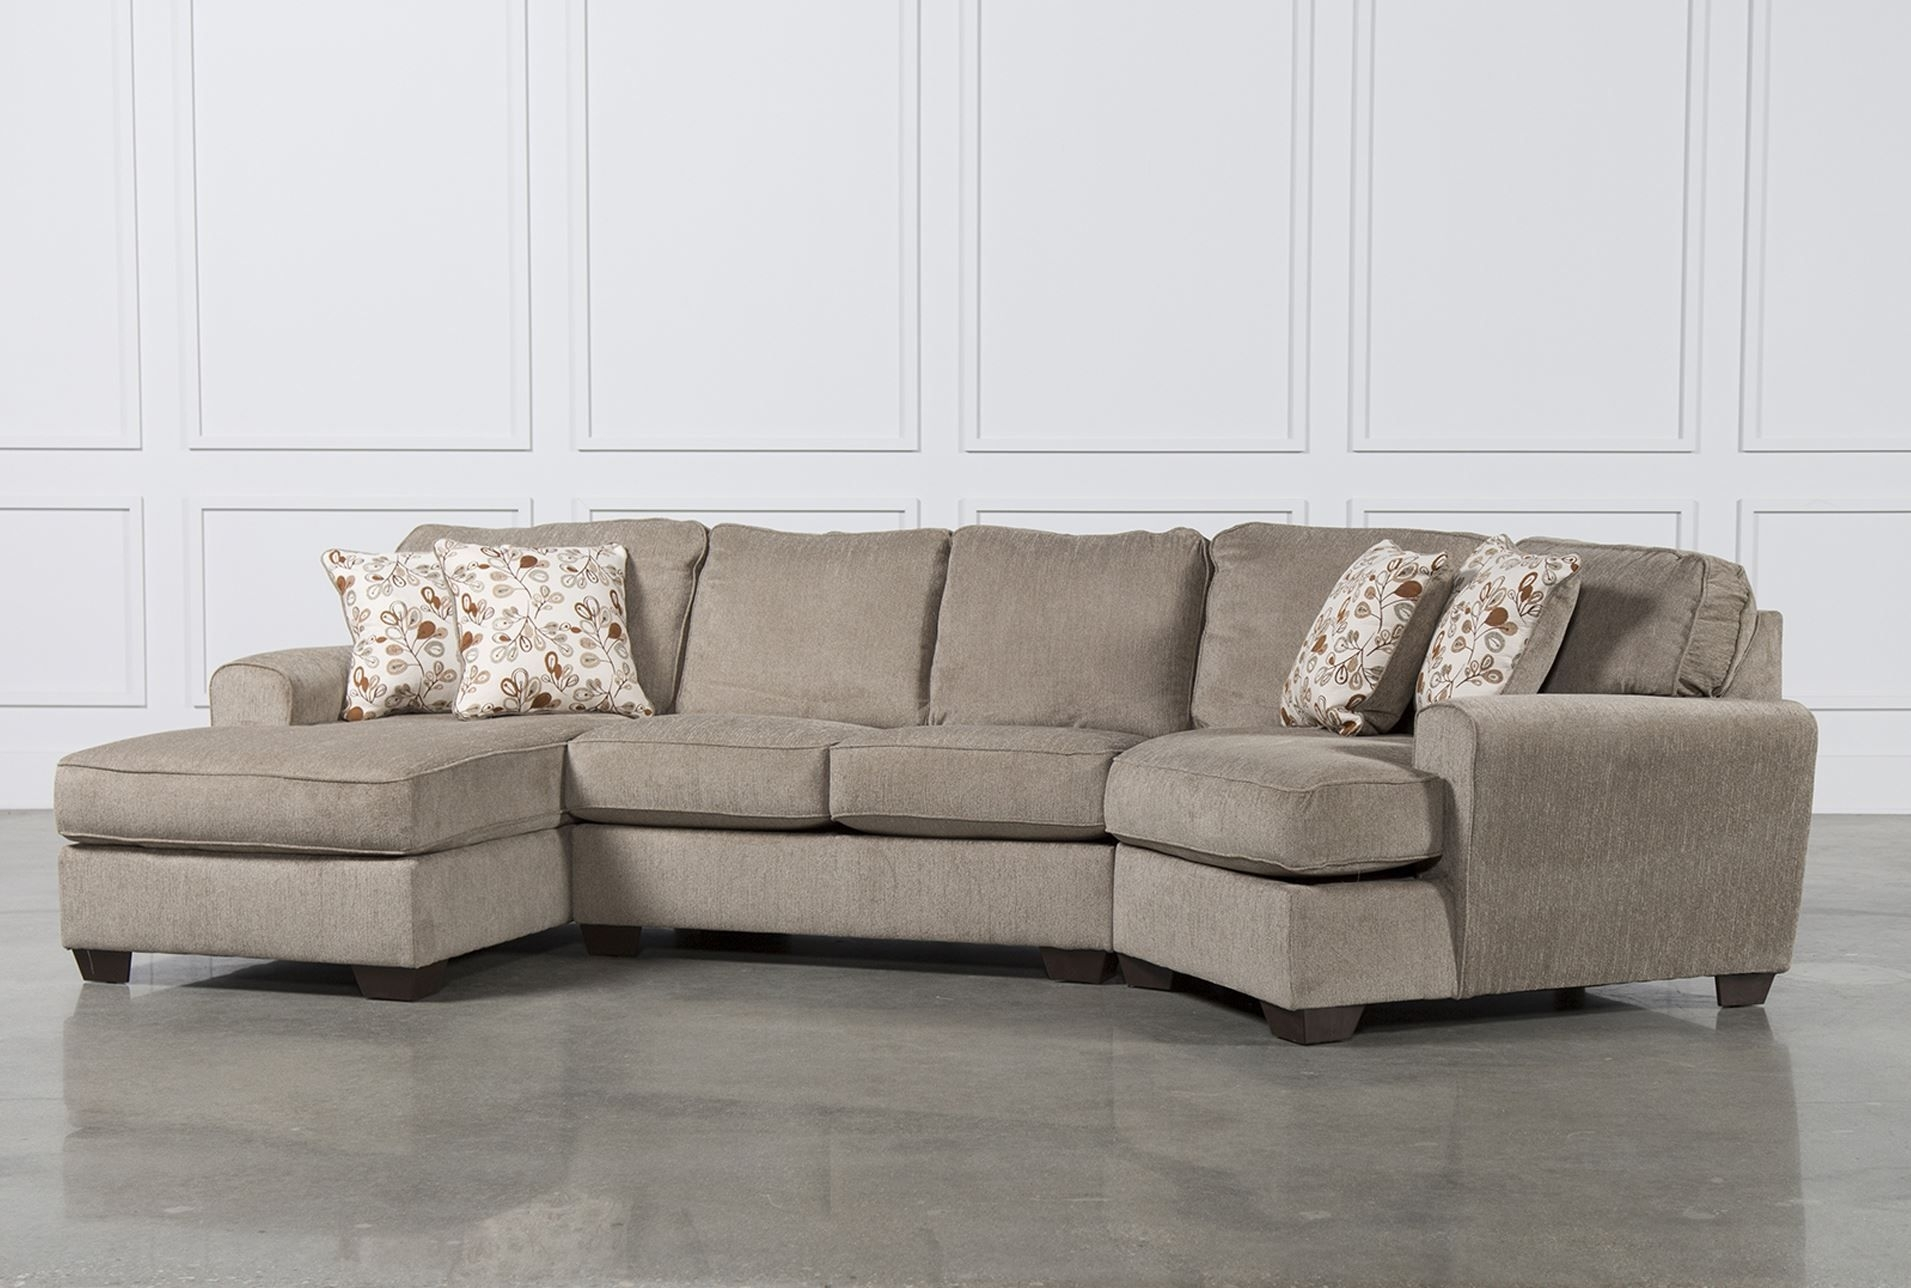 Patola Park 3 Piece Cuddler Sectional W/laf Corner Chaise In Sectional Sofas With Cuddler (View 2 of 10)